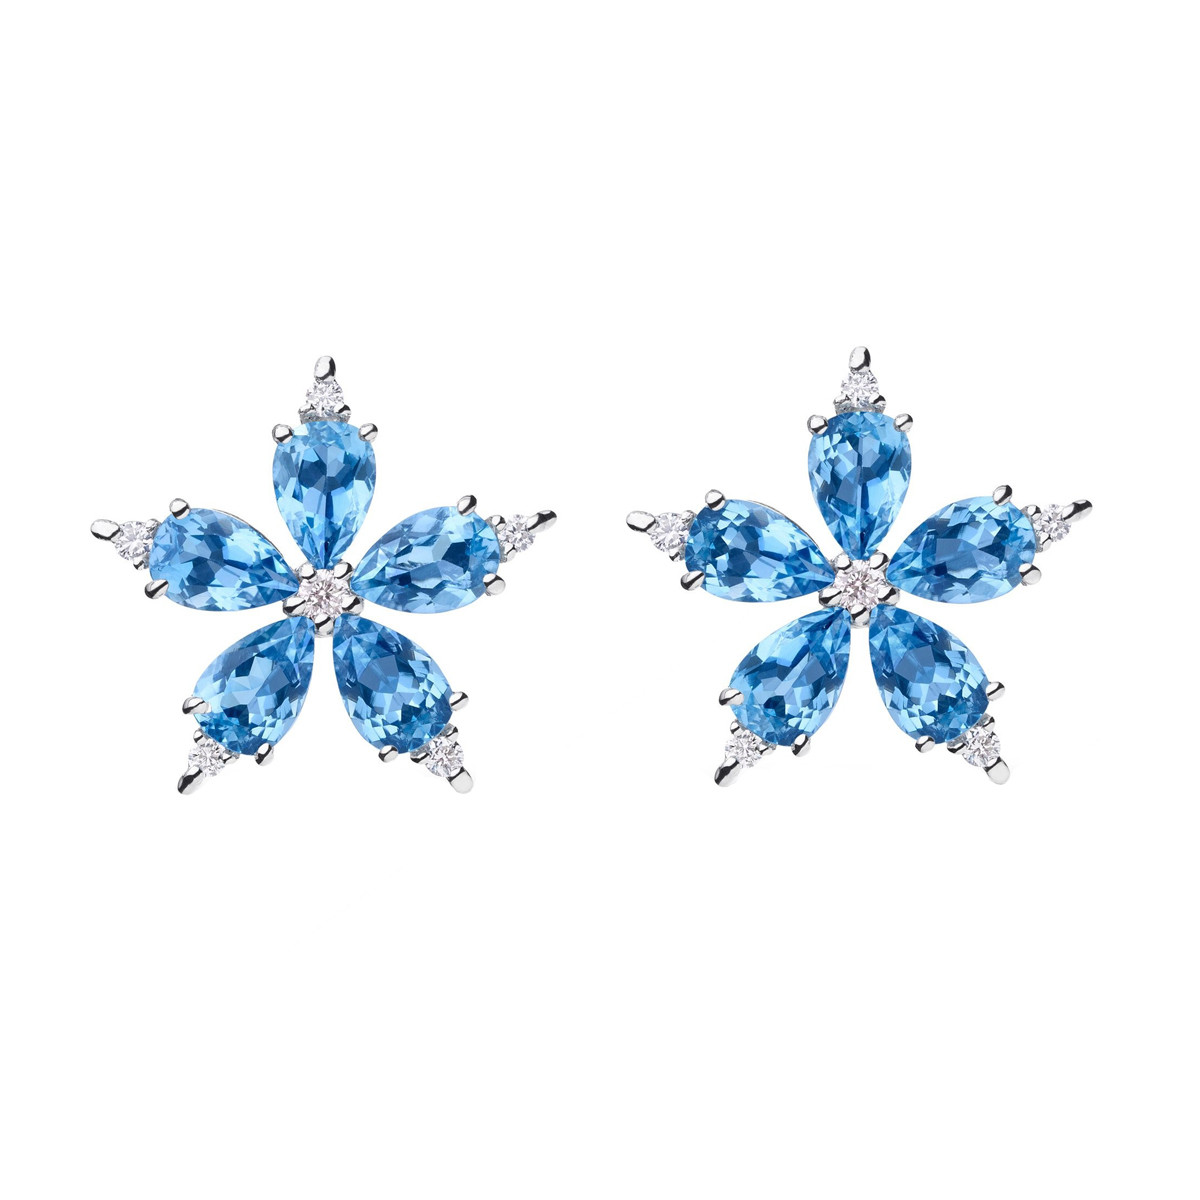 "Large Aquamarine & Diamond ""Stellanise"" Earrings"